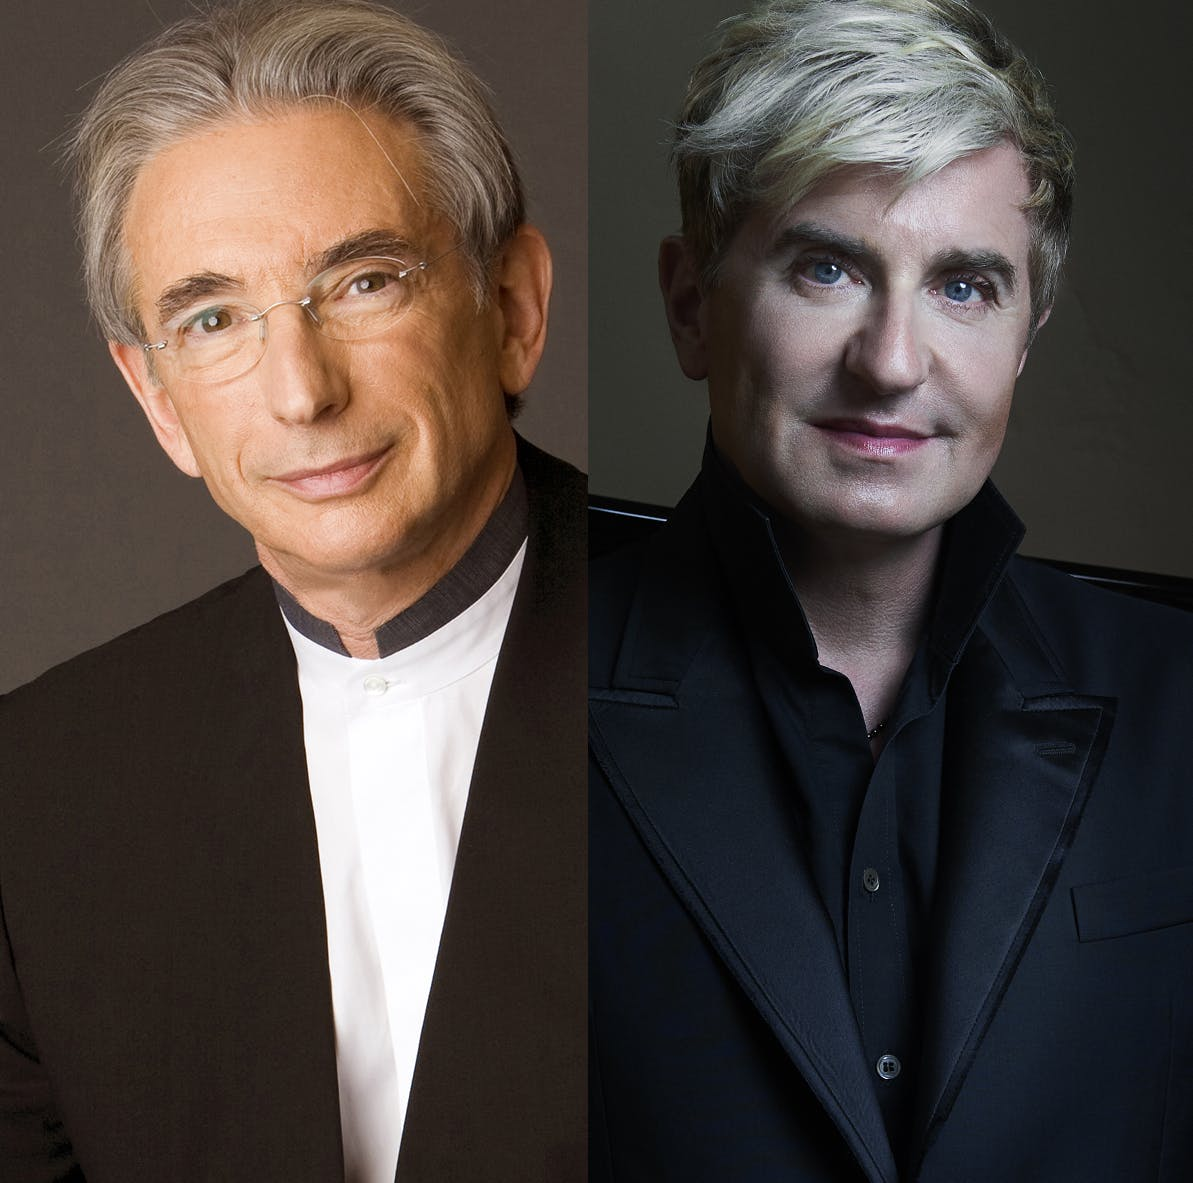 Michael Tilson Thomas and Jean-Yves Thibaudet